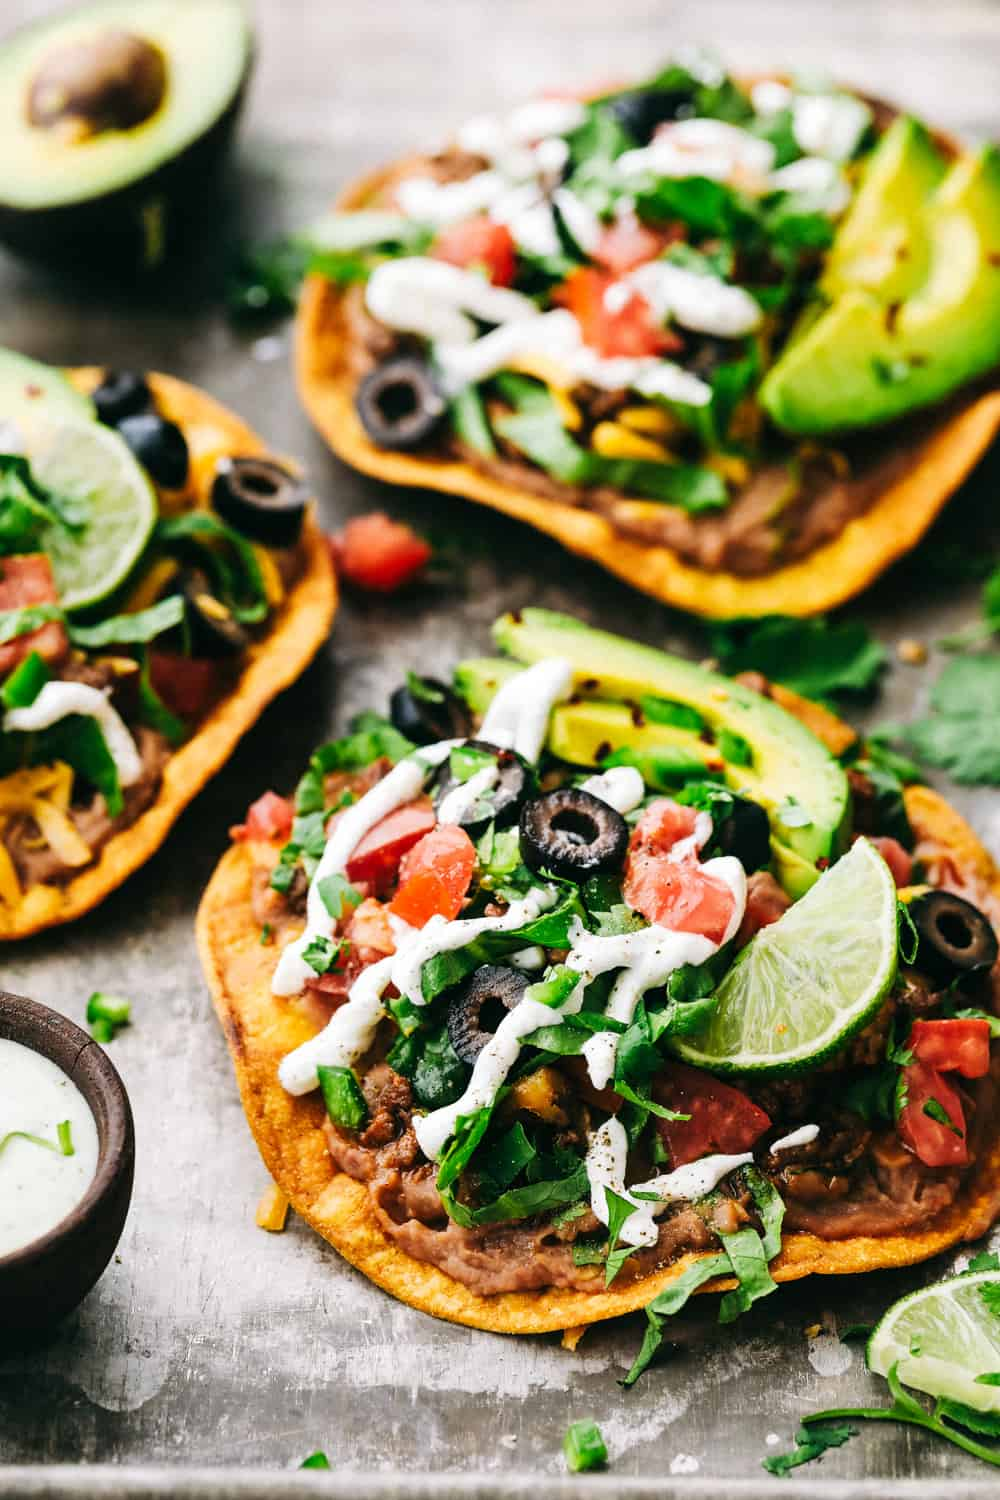 Tostadas with layers of optional toppings.